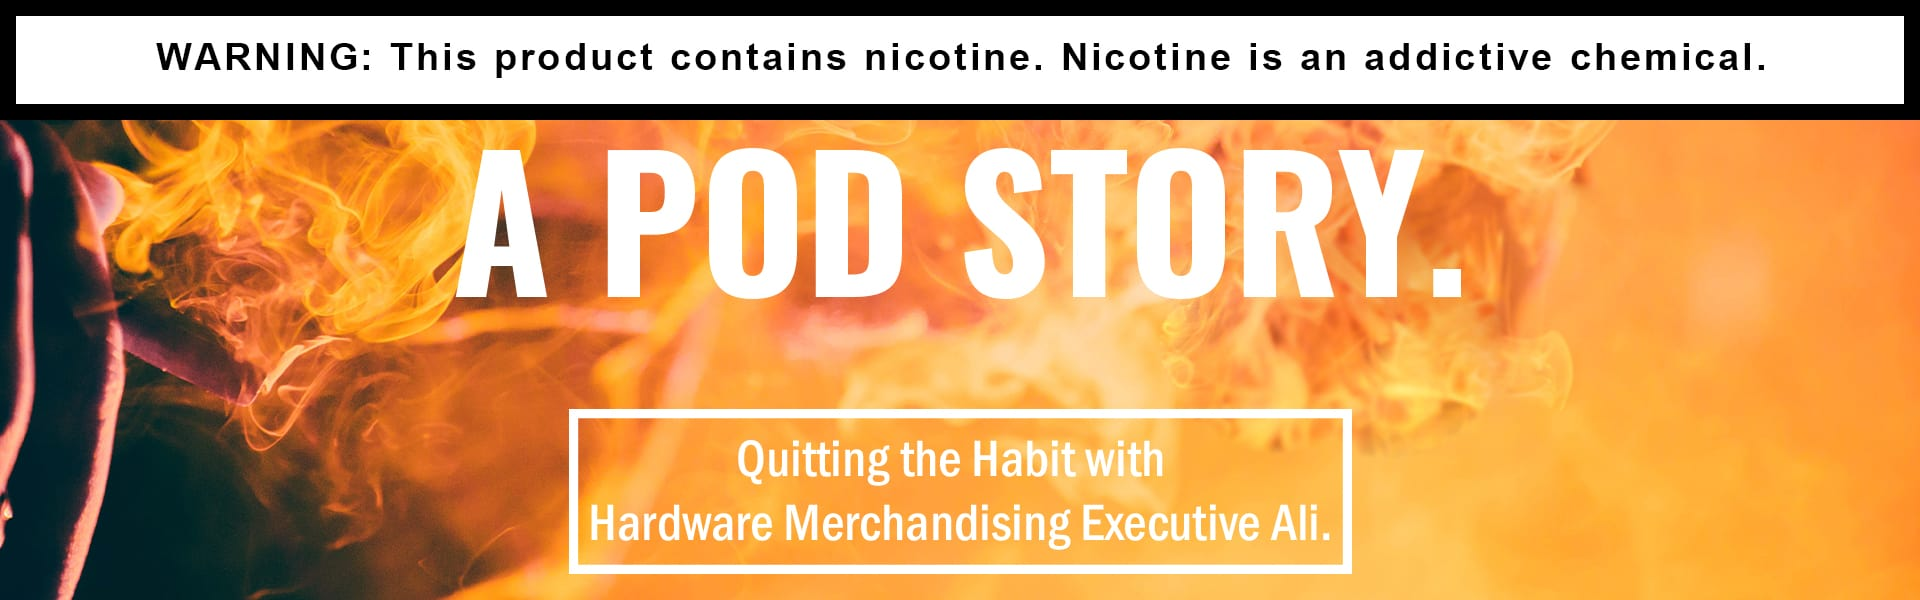 Midwest-Goods-A-Pod-Story-Interview-with-Hardware-Merchandising-Executive-Ali